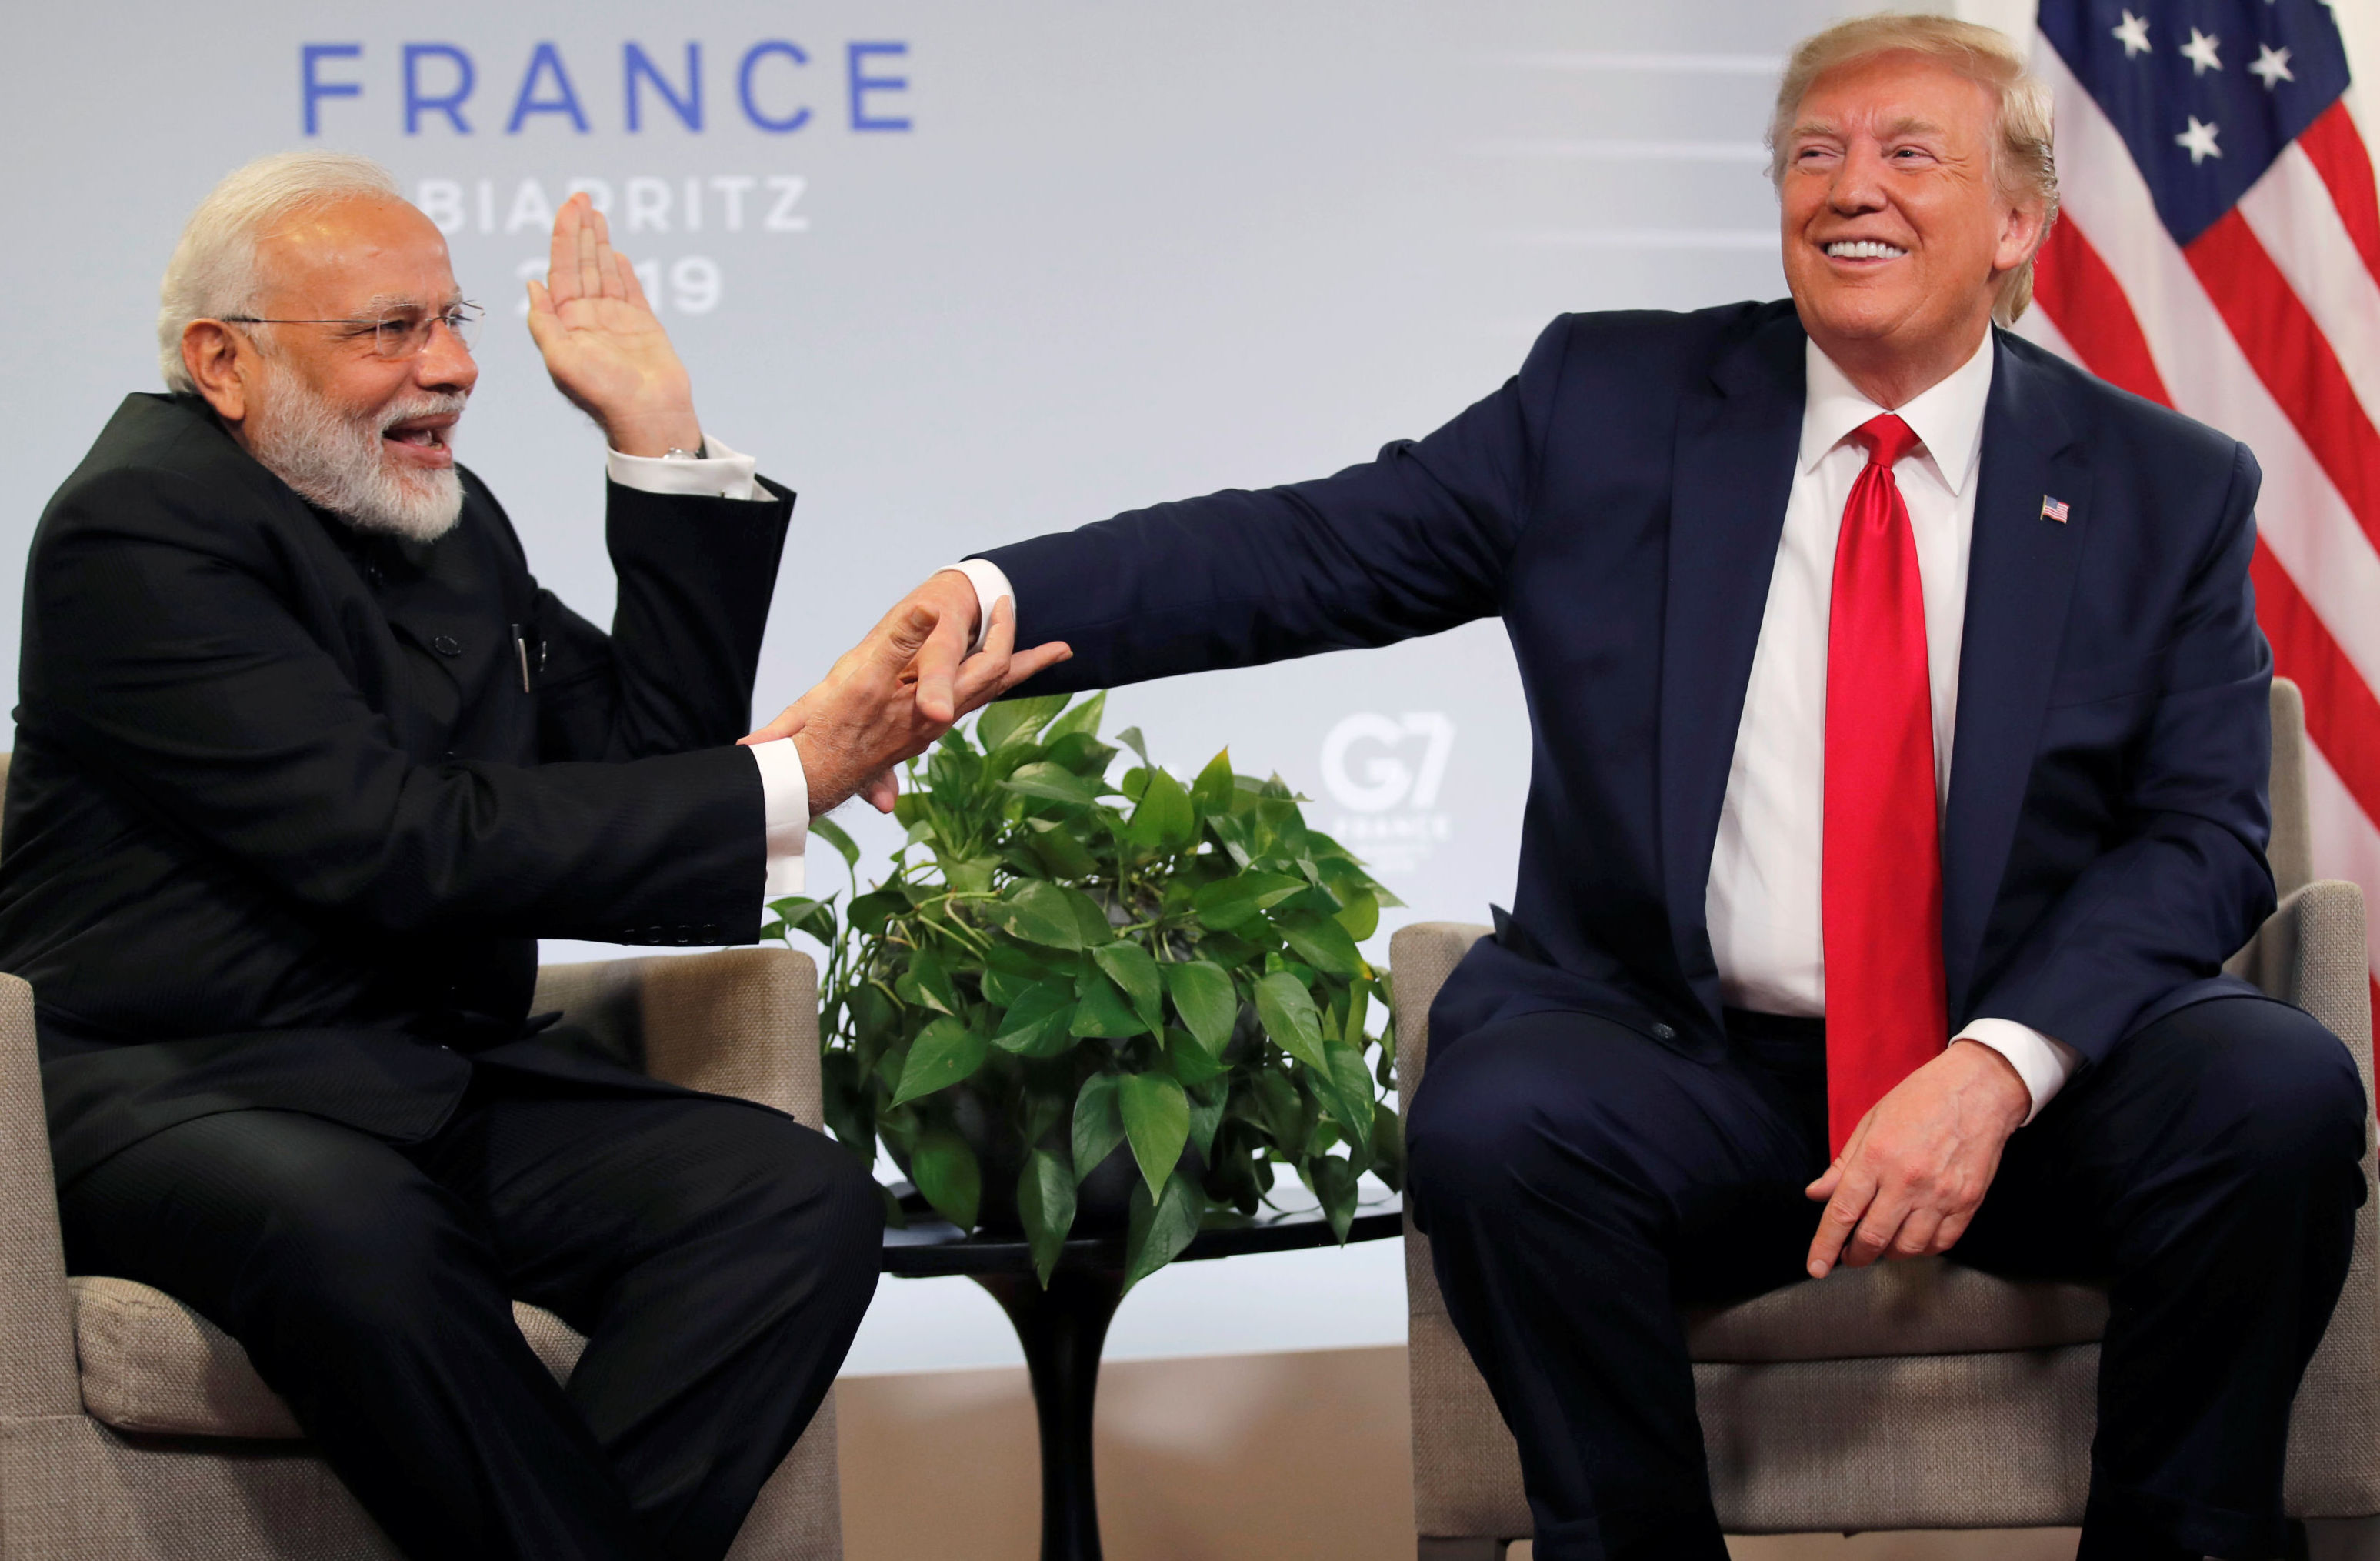 U.S. President Donald Trump meets Indian Prime Minister Narendra Modi for bilateral talks during the G7 summit in Biarritz, France, August 26, 2019